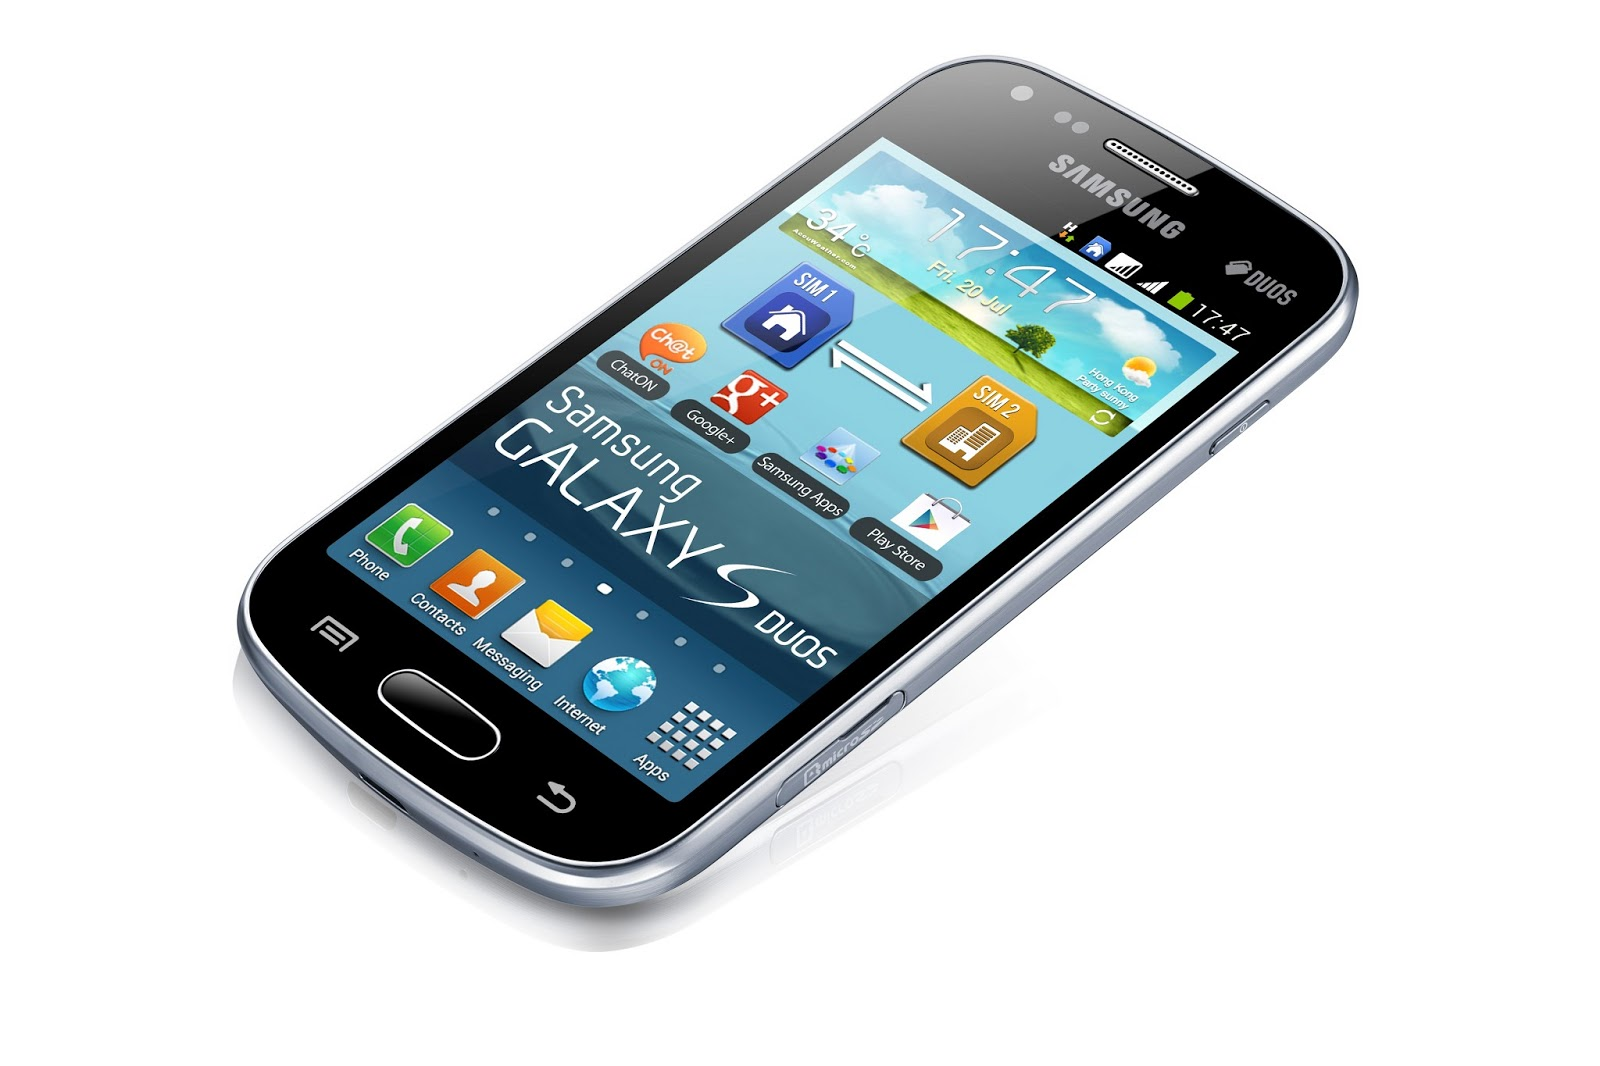 It uses Android OS, version 4.0.(Ice Cream Sandwich) and s upports SMS ...